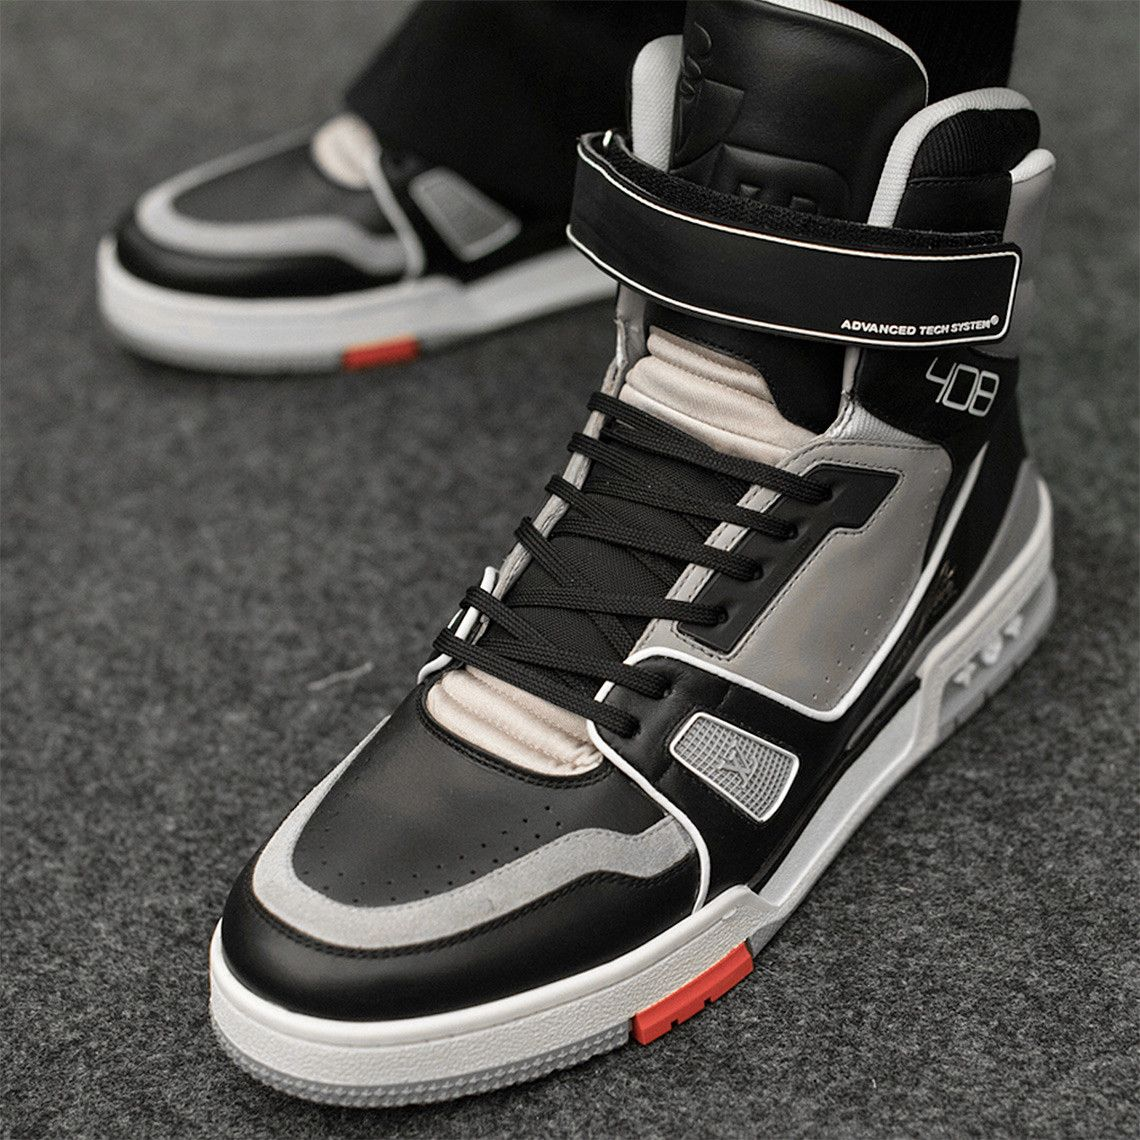 95bfb5b9e6ab1 Virgil Abloh Louis Vuitton Sneaker Detailed Look